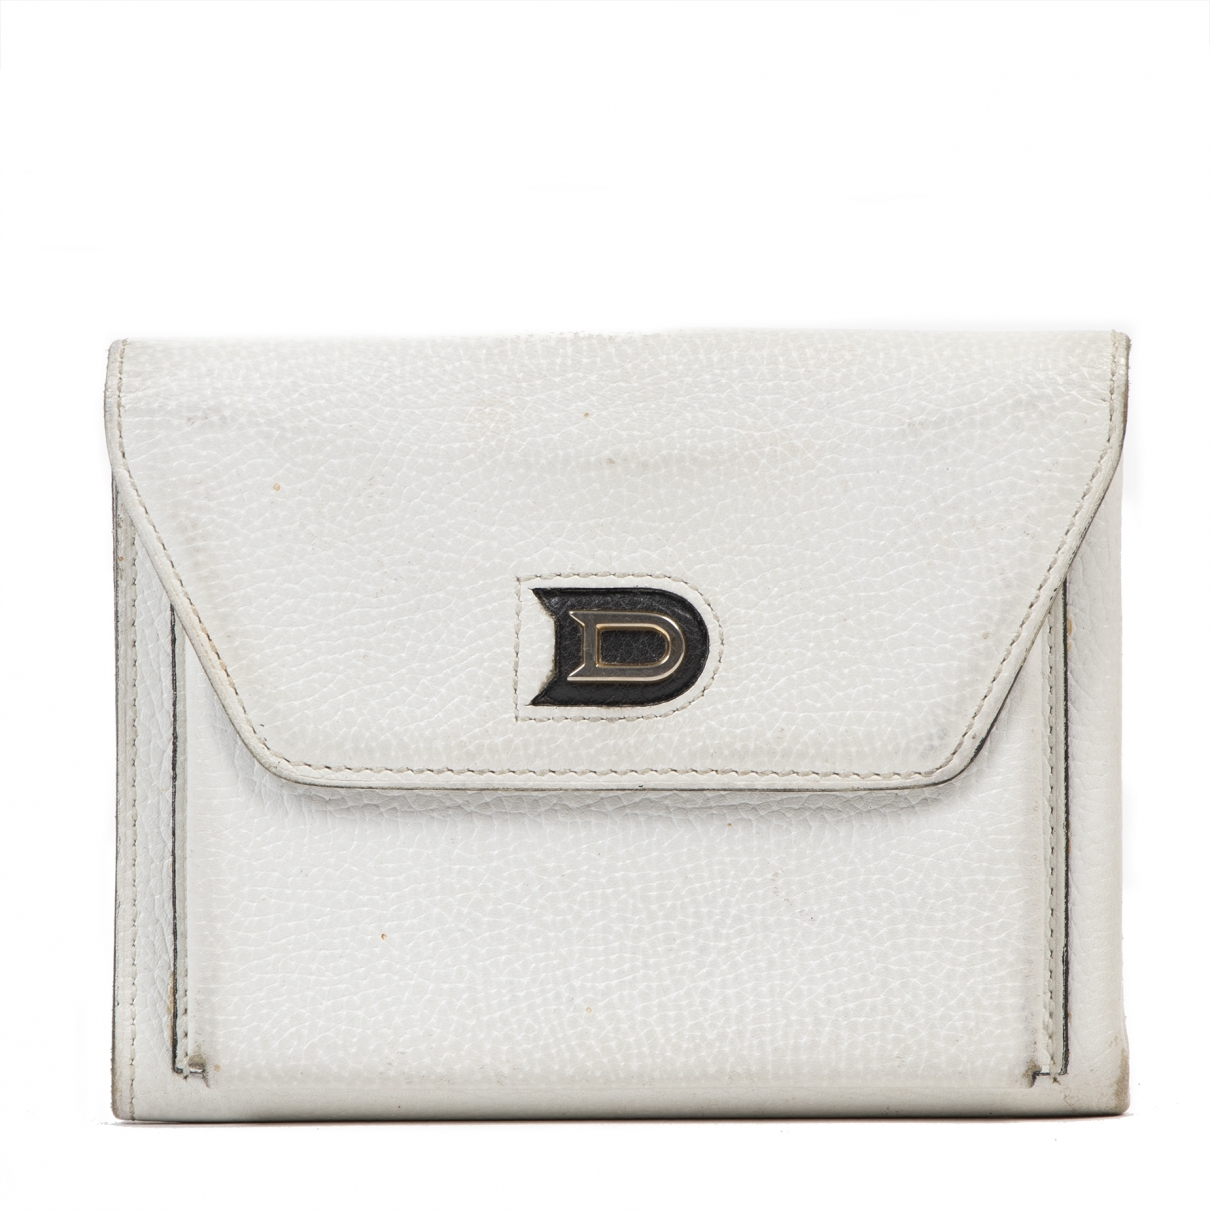 Delvaux \N Ecru Leather wallet for Women \N